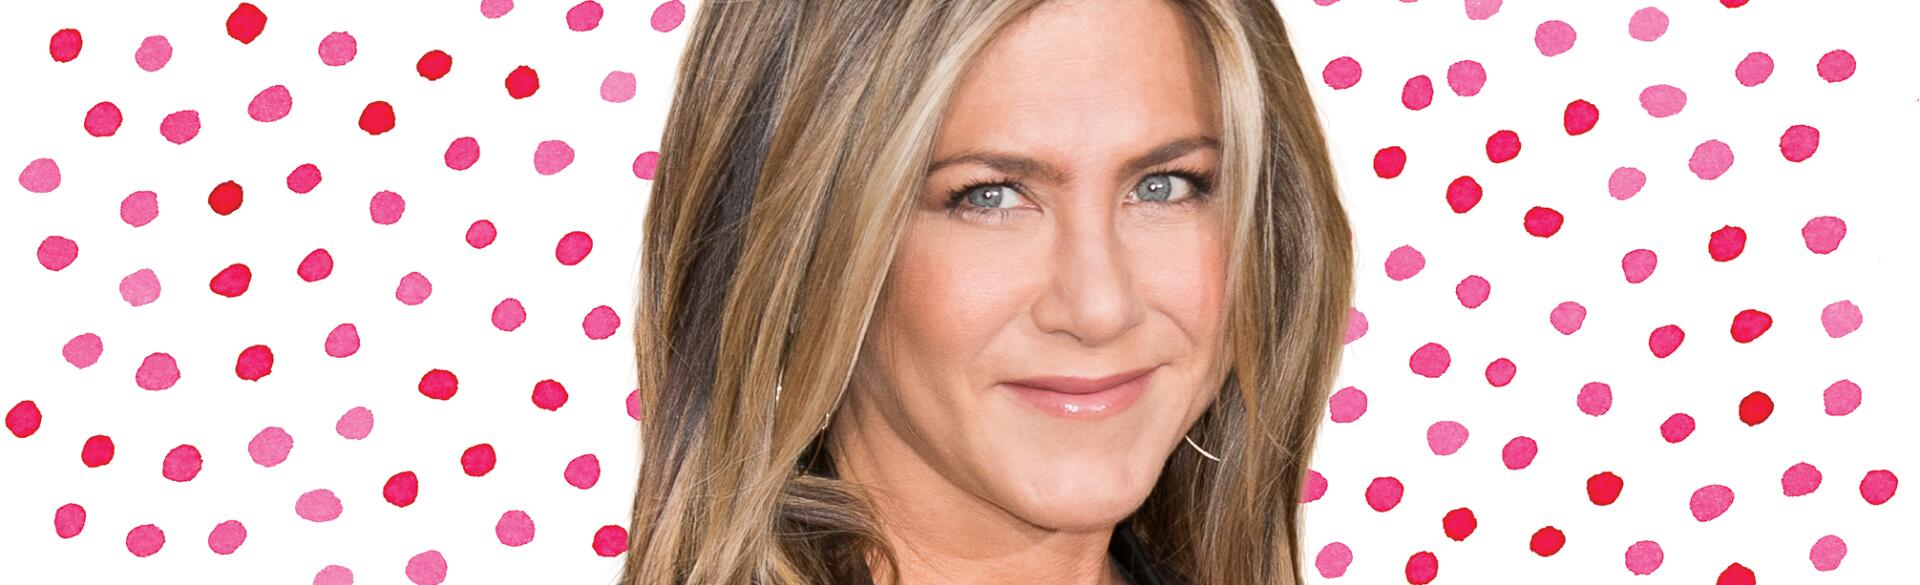 The Girlfriend Jennifer Aniston Collagen Powder eye wrinkle reduction celebrity 40 plus